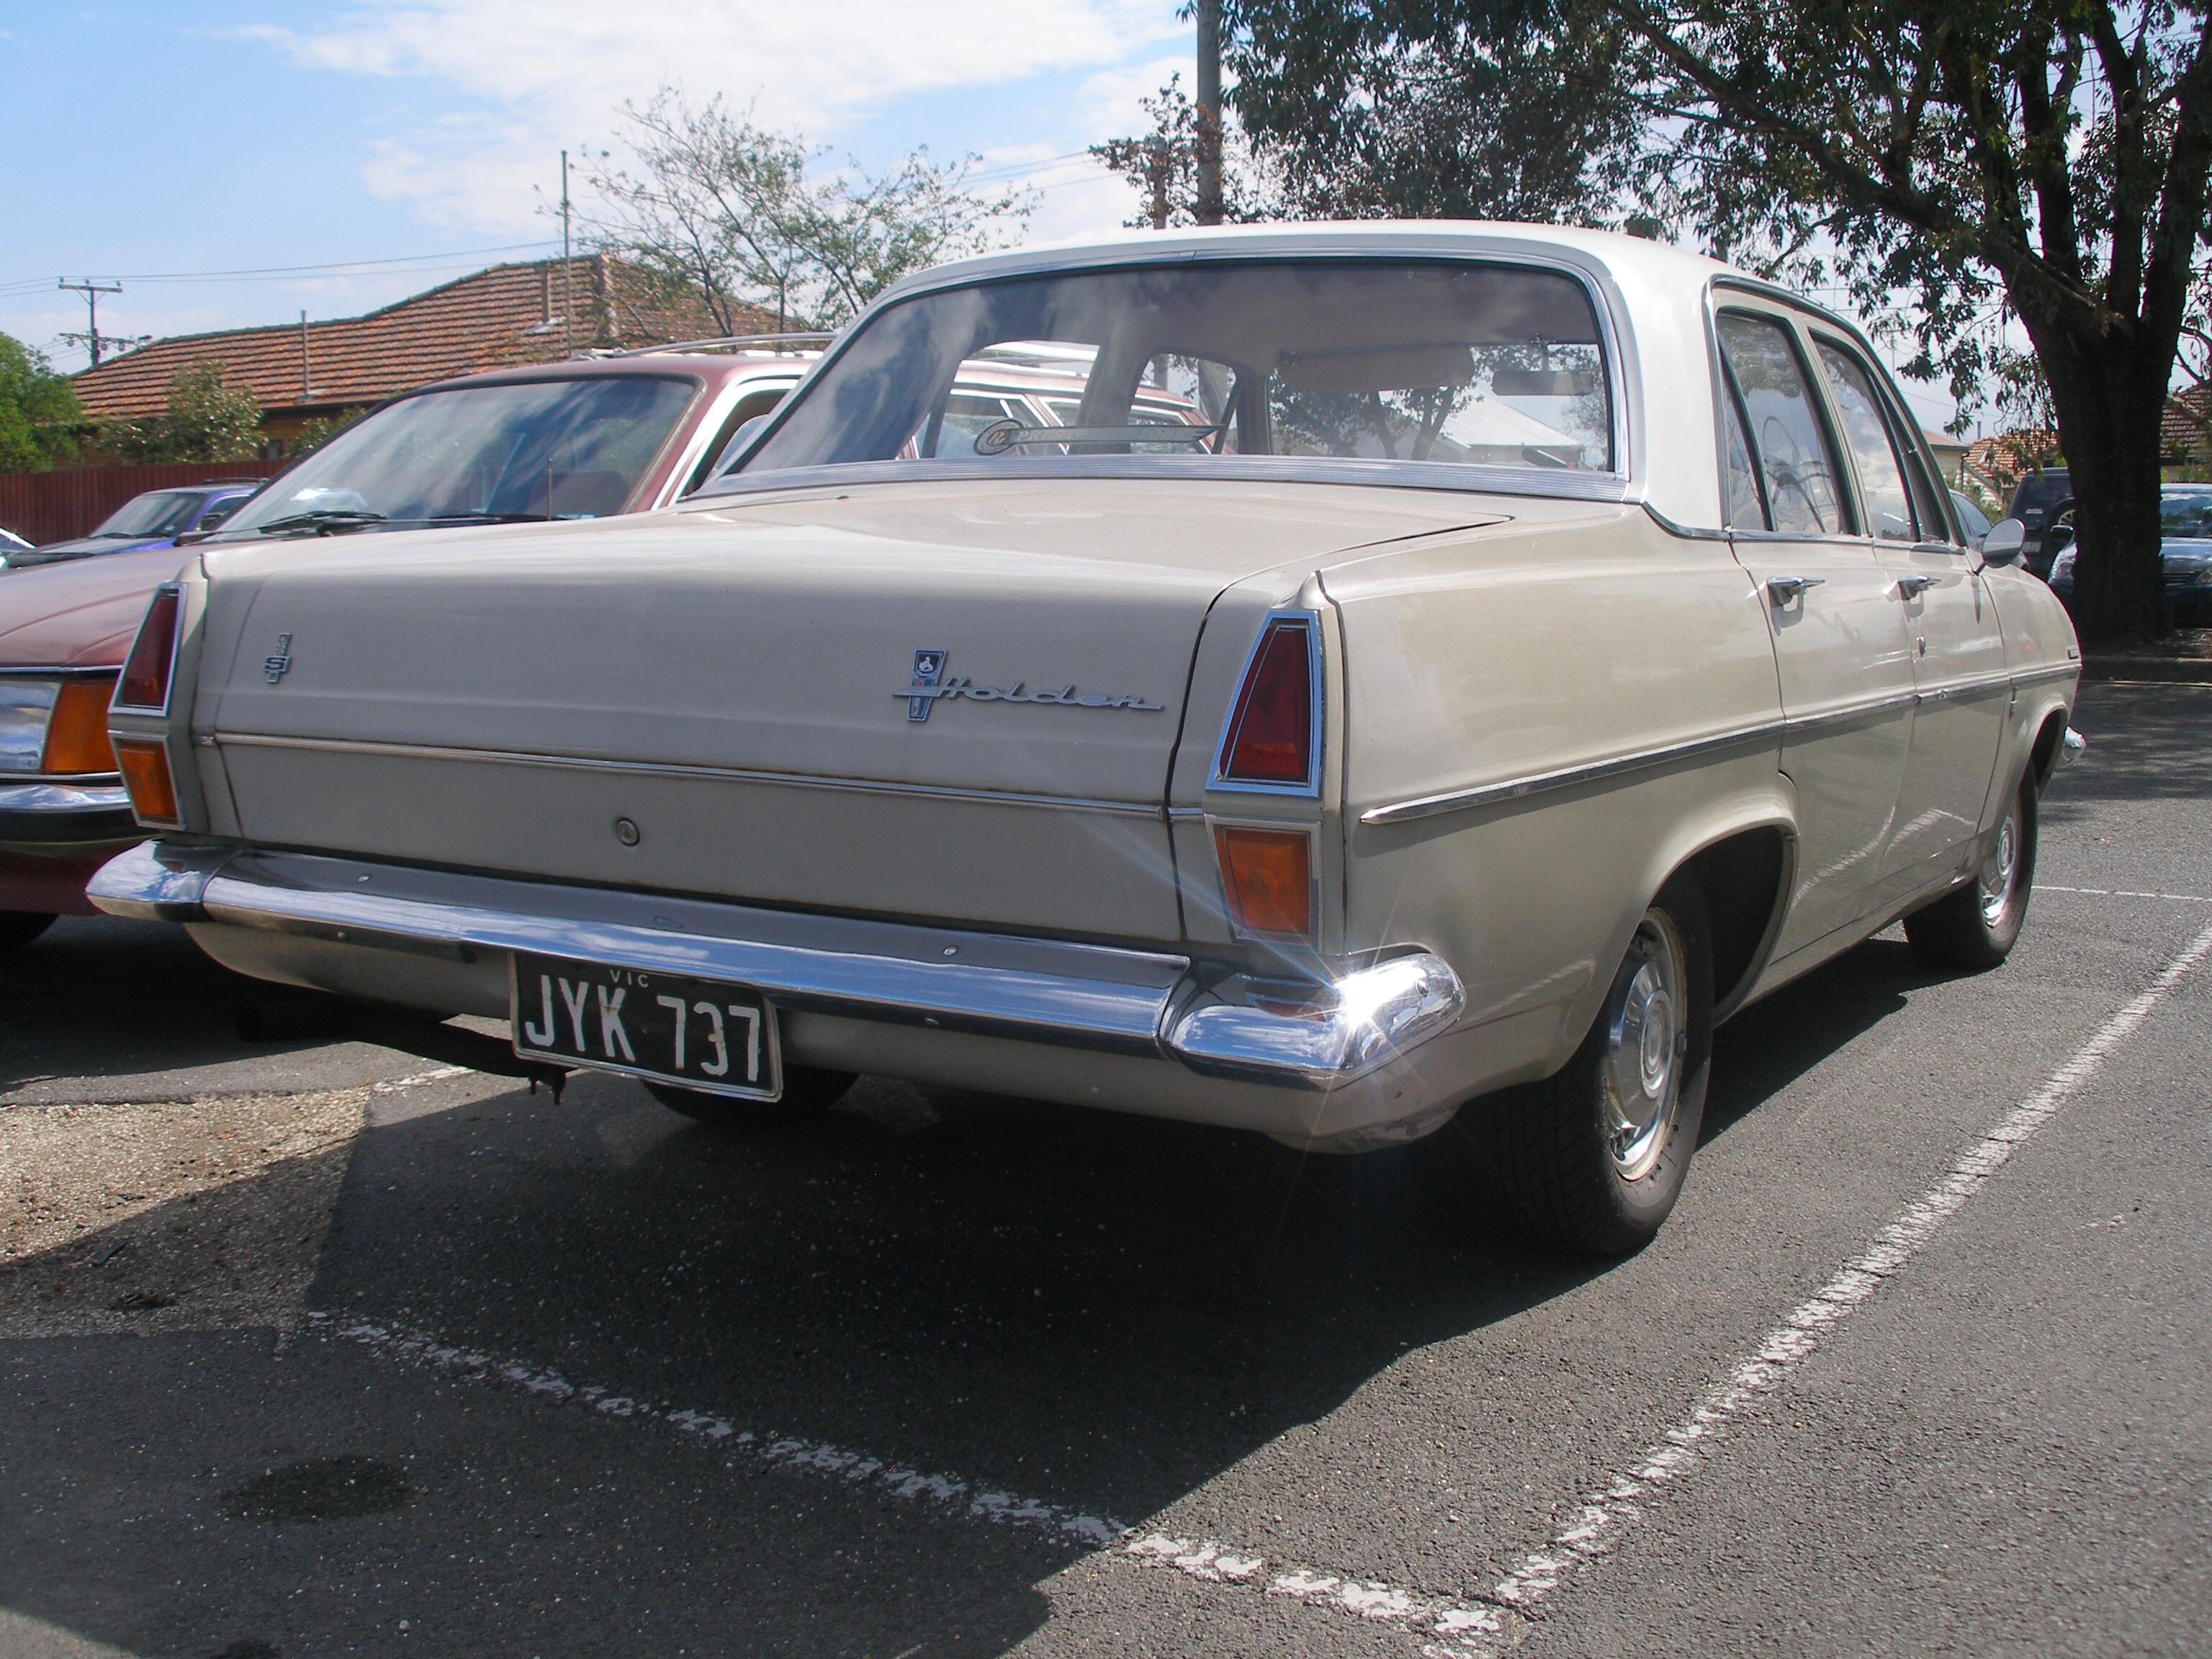 File 1967 Holden HR Special 186 S sedan 02 furthermore 2845773 further Watch as well File 2008 FIAT 500 1 4 Lounge   Flickr   The Car Spy  20 also 2018 Volvo V60. on 4 way car